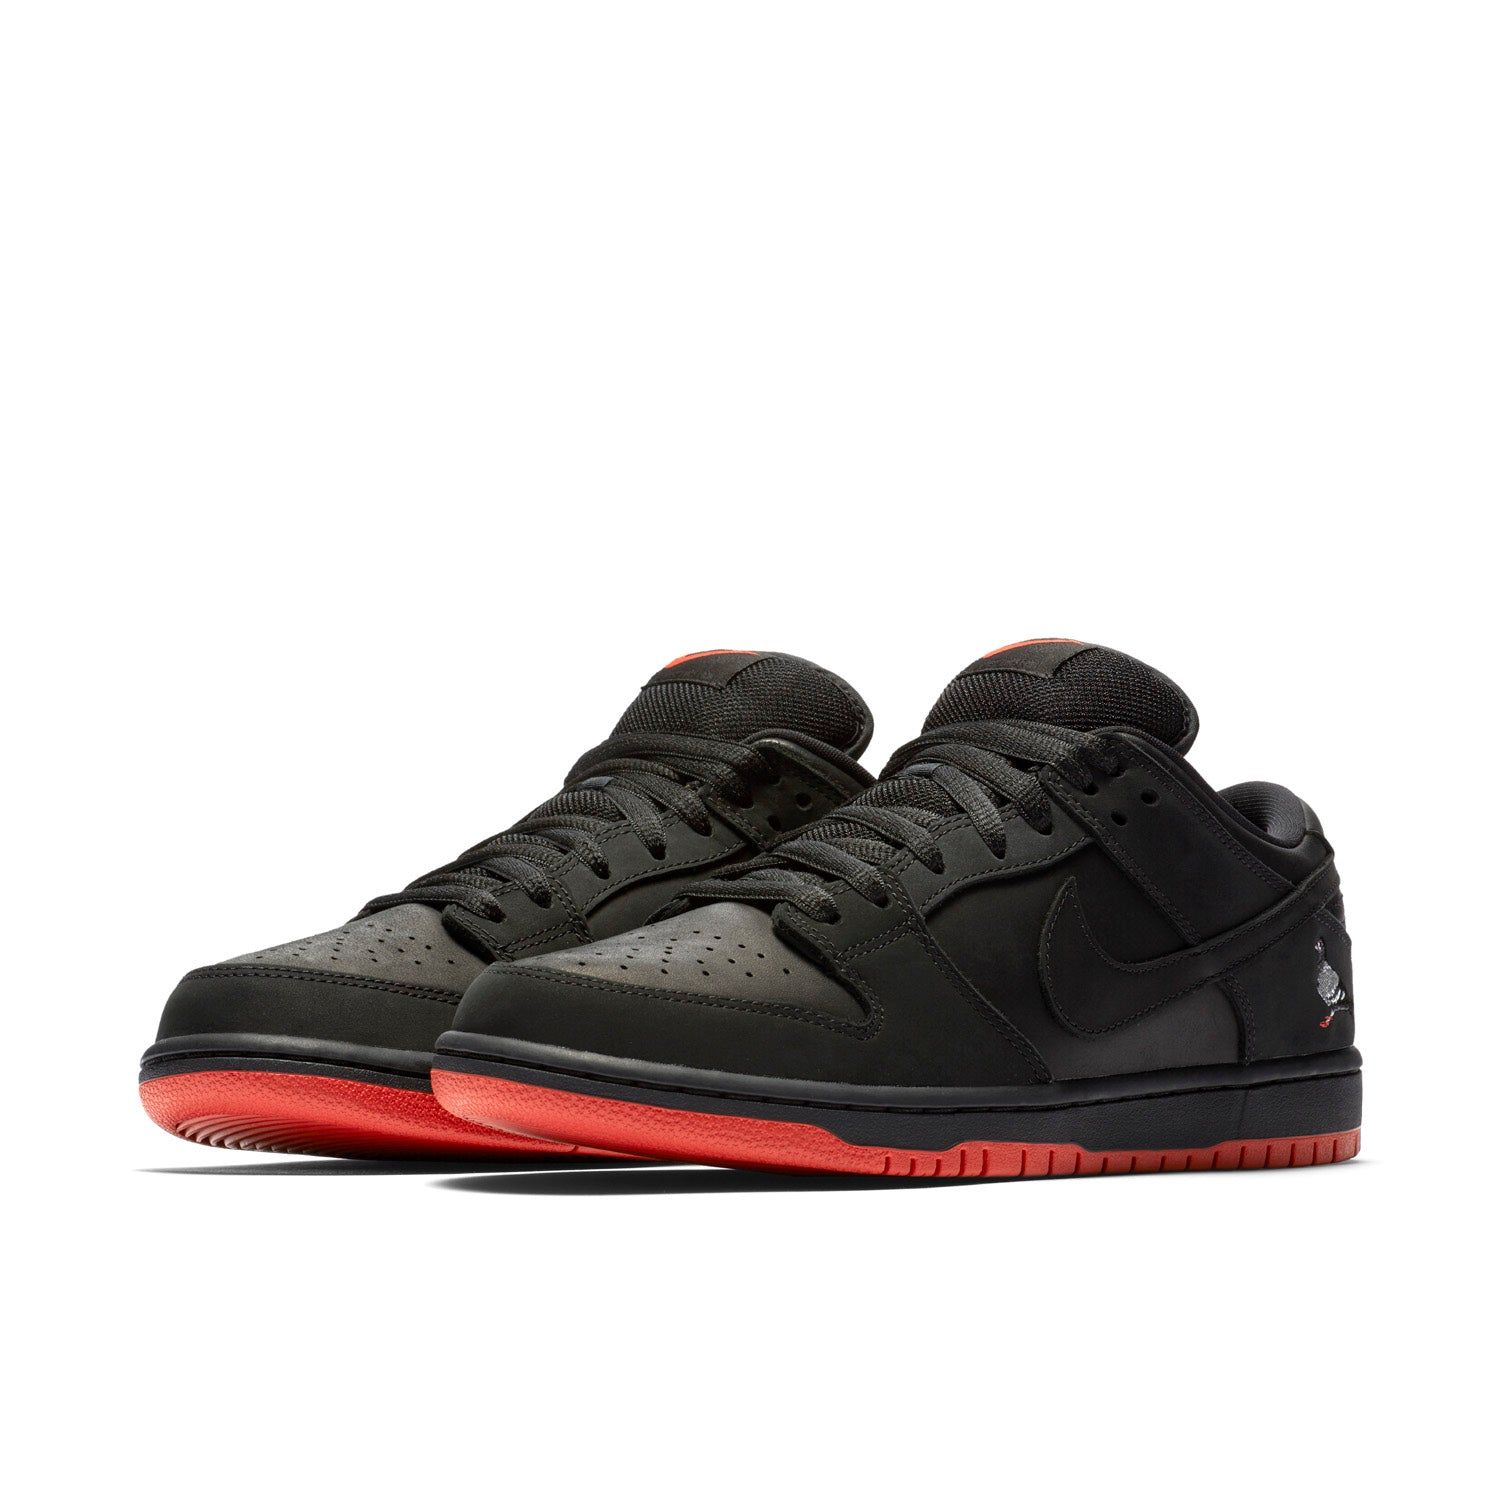 NIKE SB DUNK LOW STAPLES PIGEON BLACK / BLACK / SIENNA